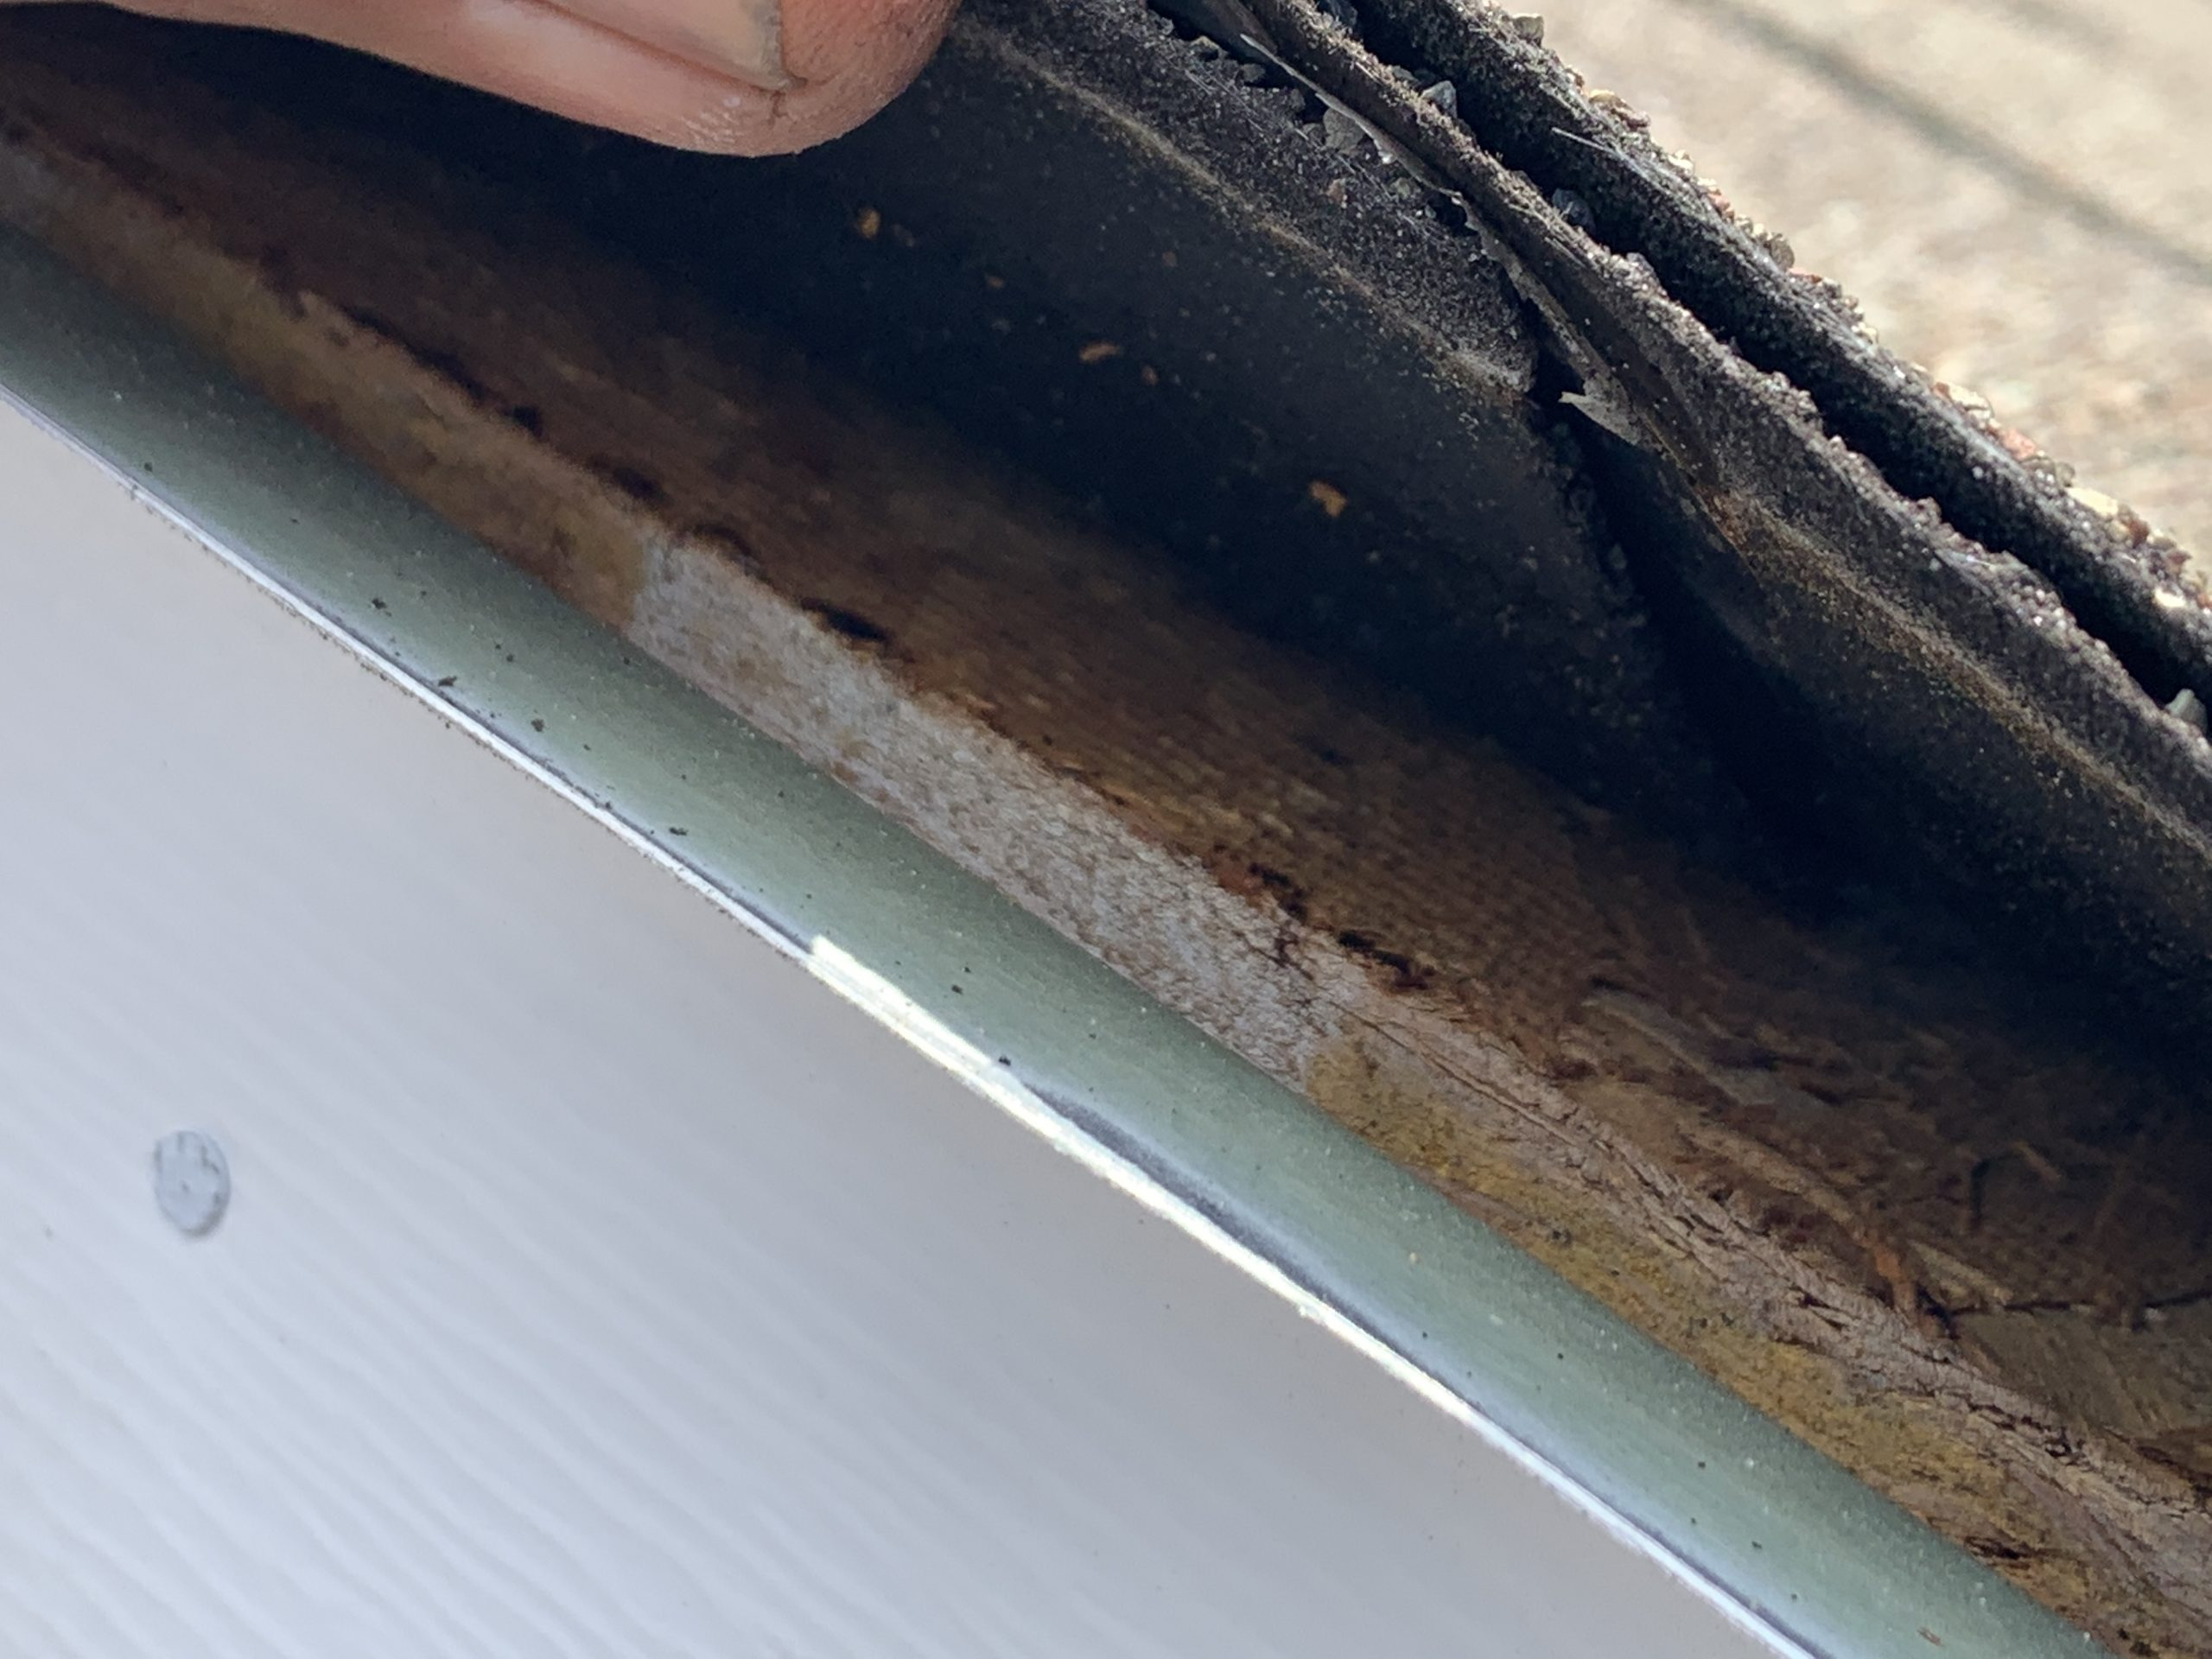 this is a picture of the edge of a roof where the shingles are getting lifted to reveal the osb board condition